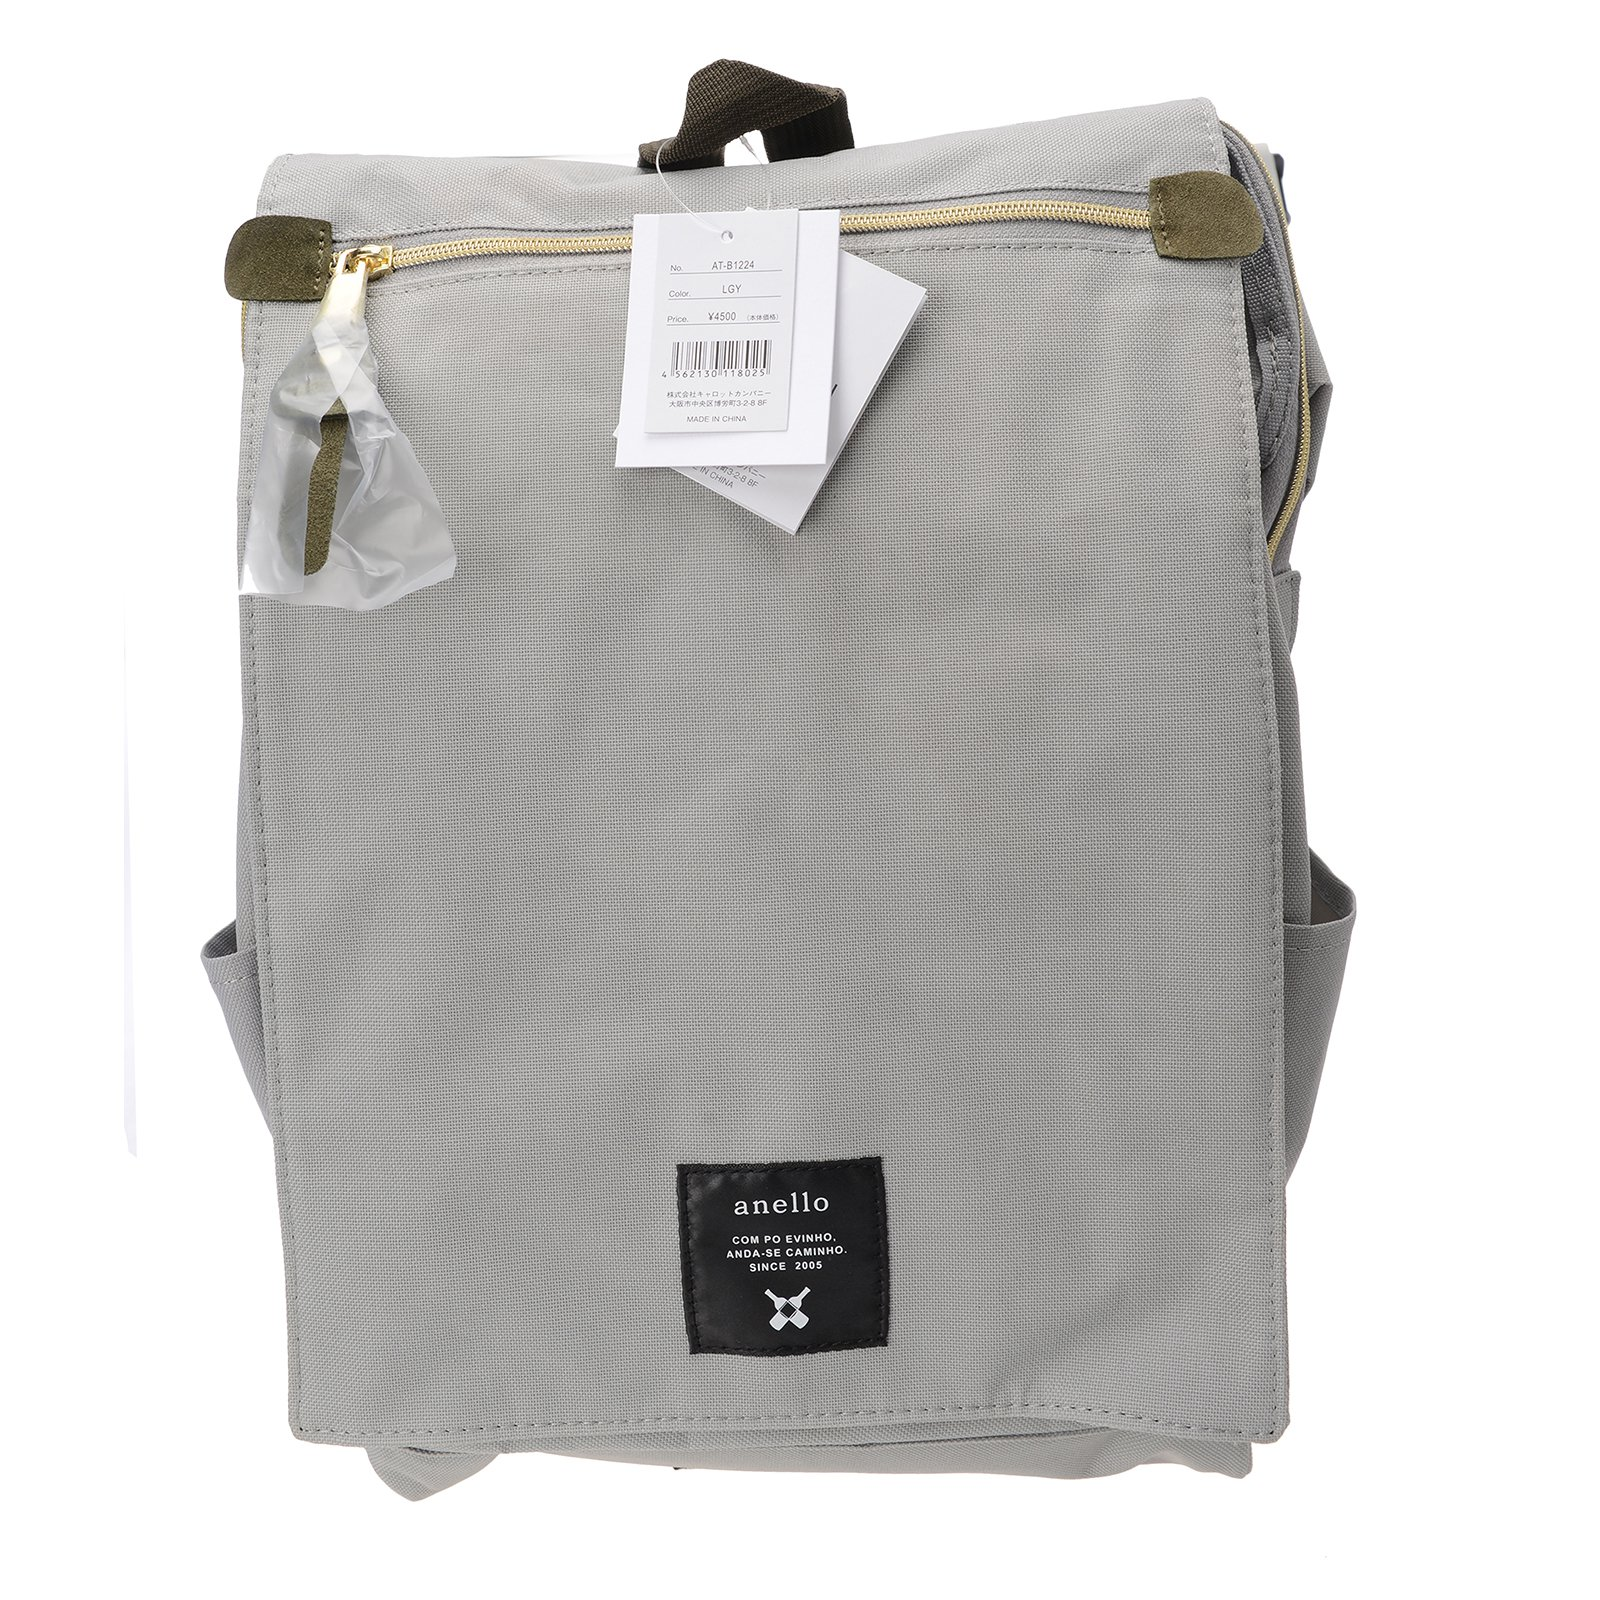 011b95071a43 Get Quotations · Anello Official Flap Cover Grey Japan Fashion Shoulder Rucksack  Backpack School Travel Bag Large AT-